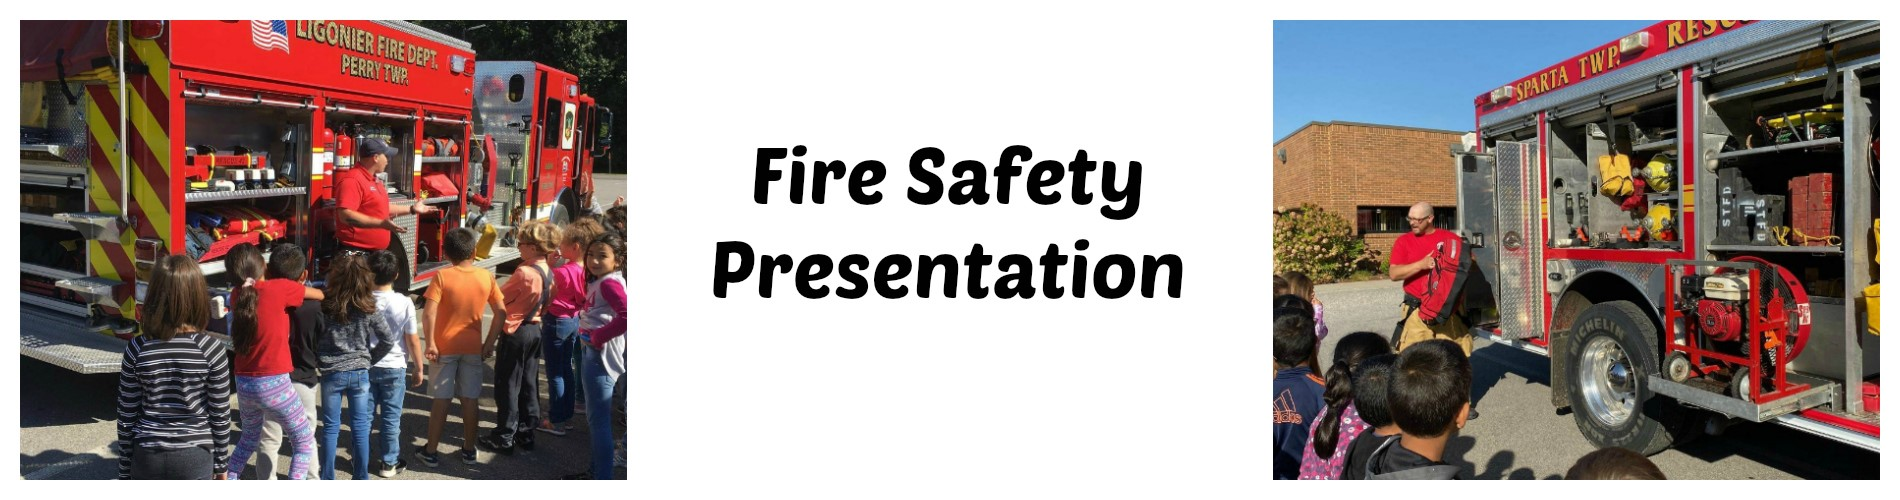 Fire Safety Presentation